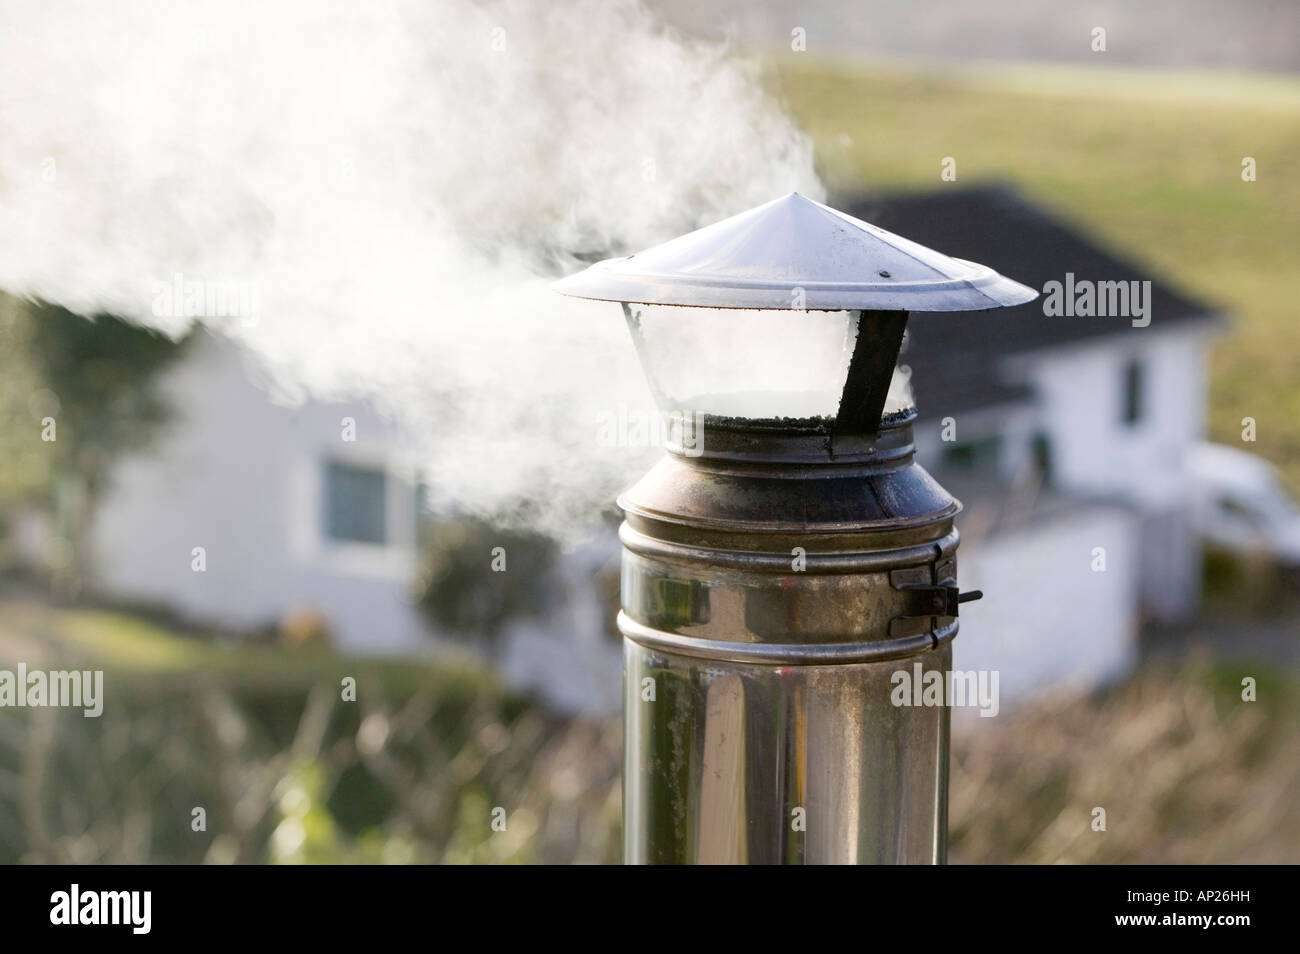 A household chimney emmiting smoke - Stock Image